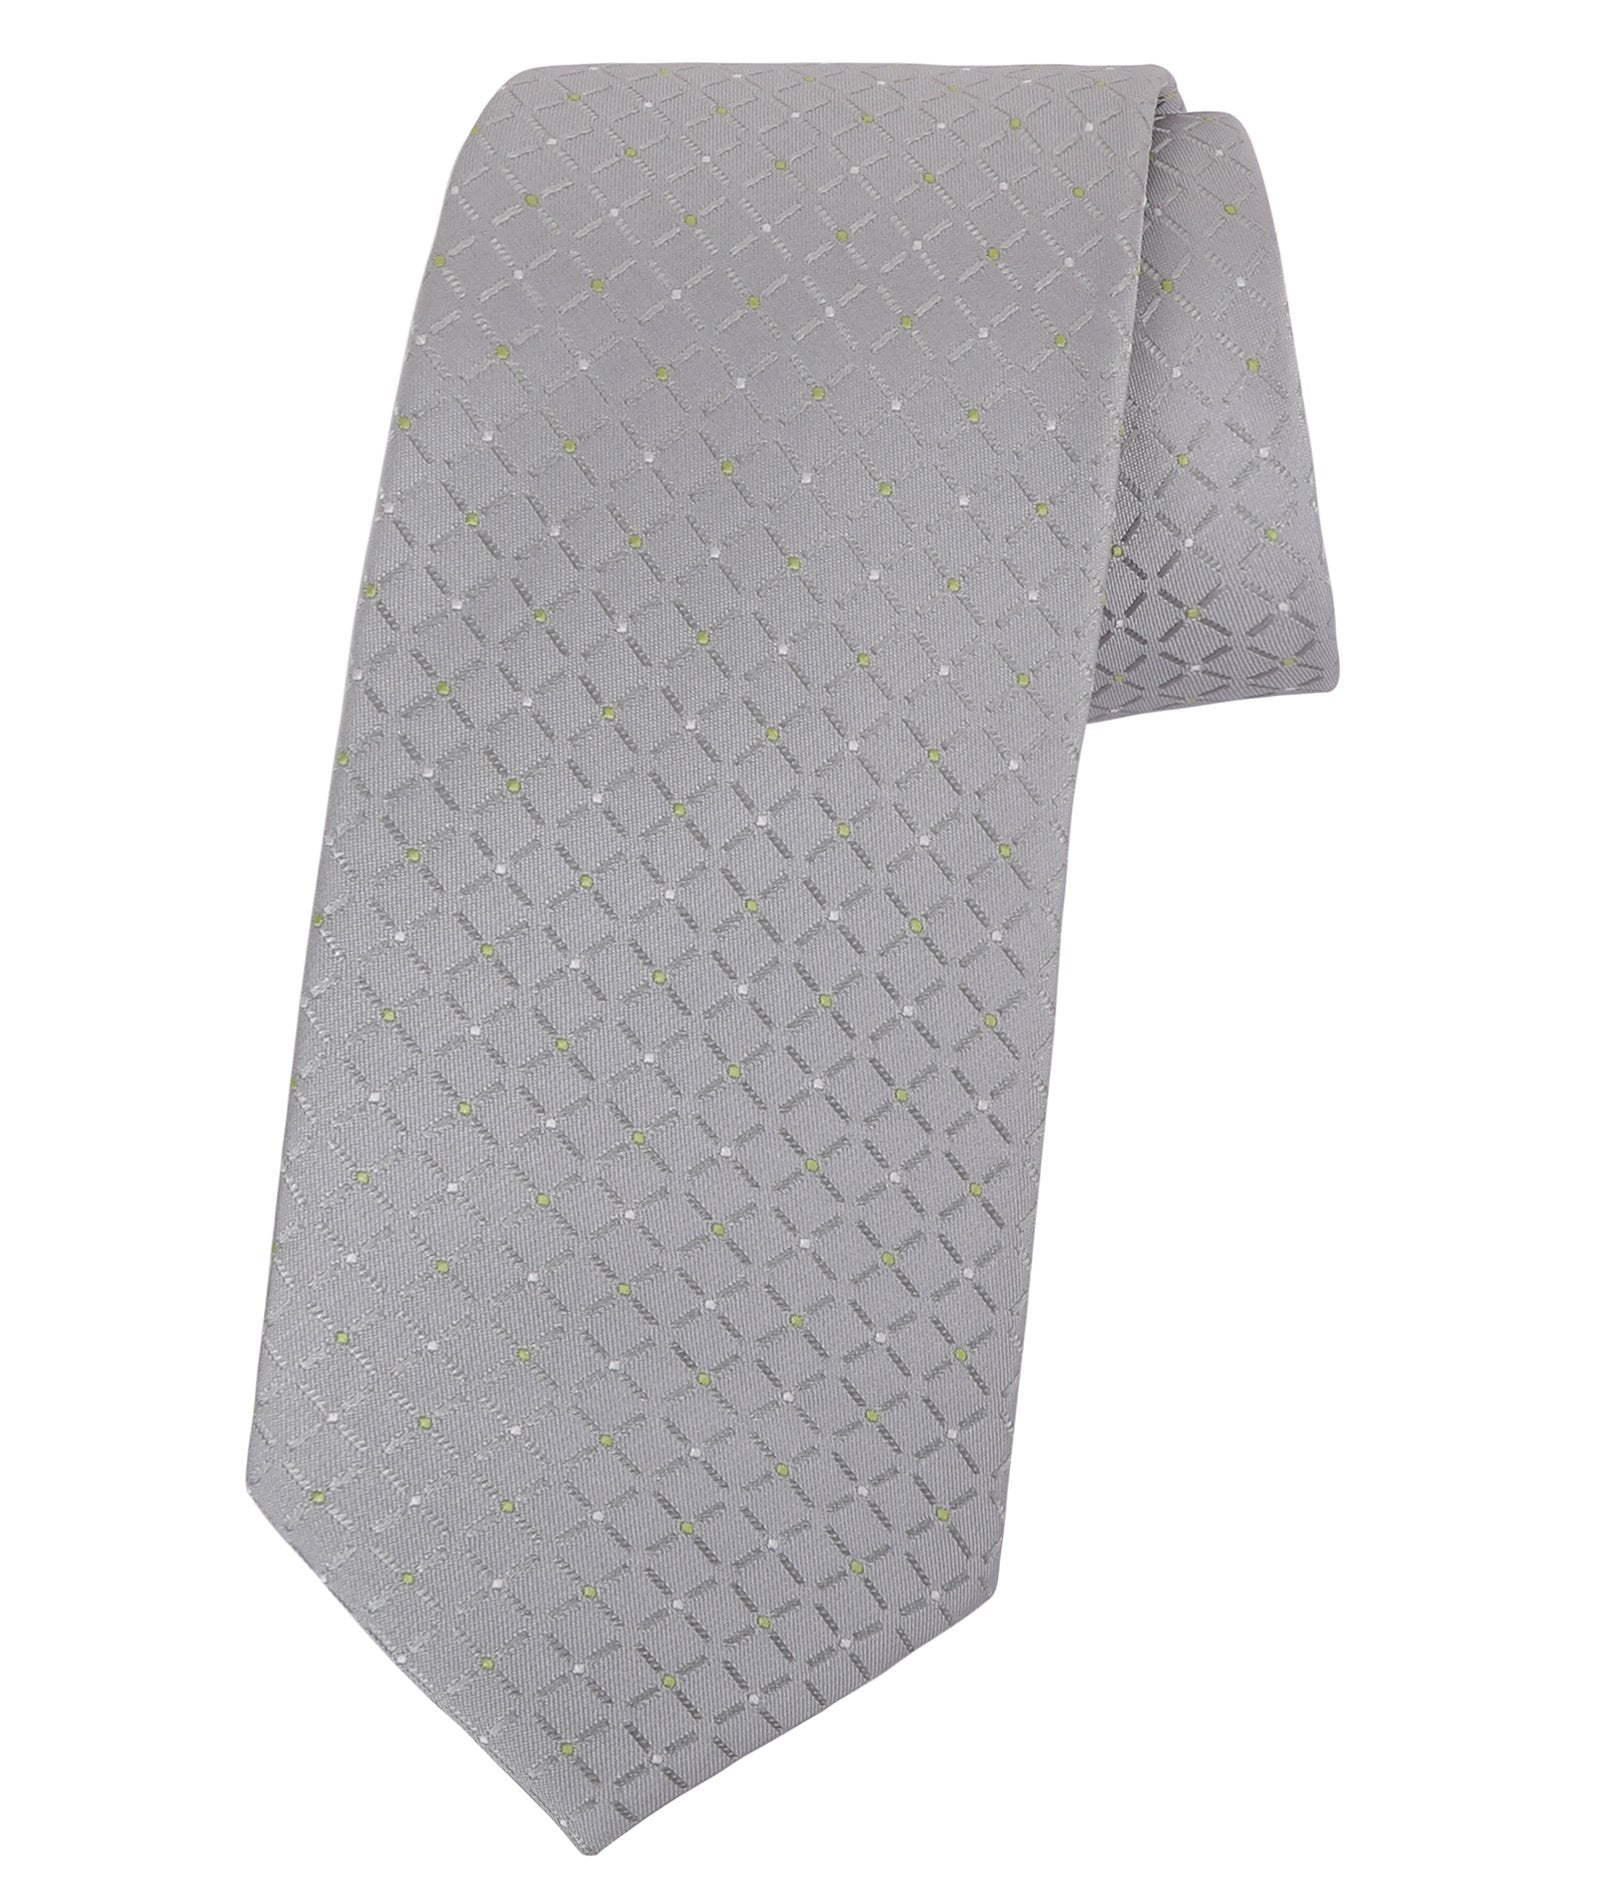 Grey with Green Dots Tie